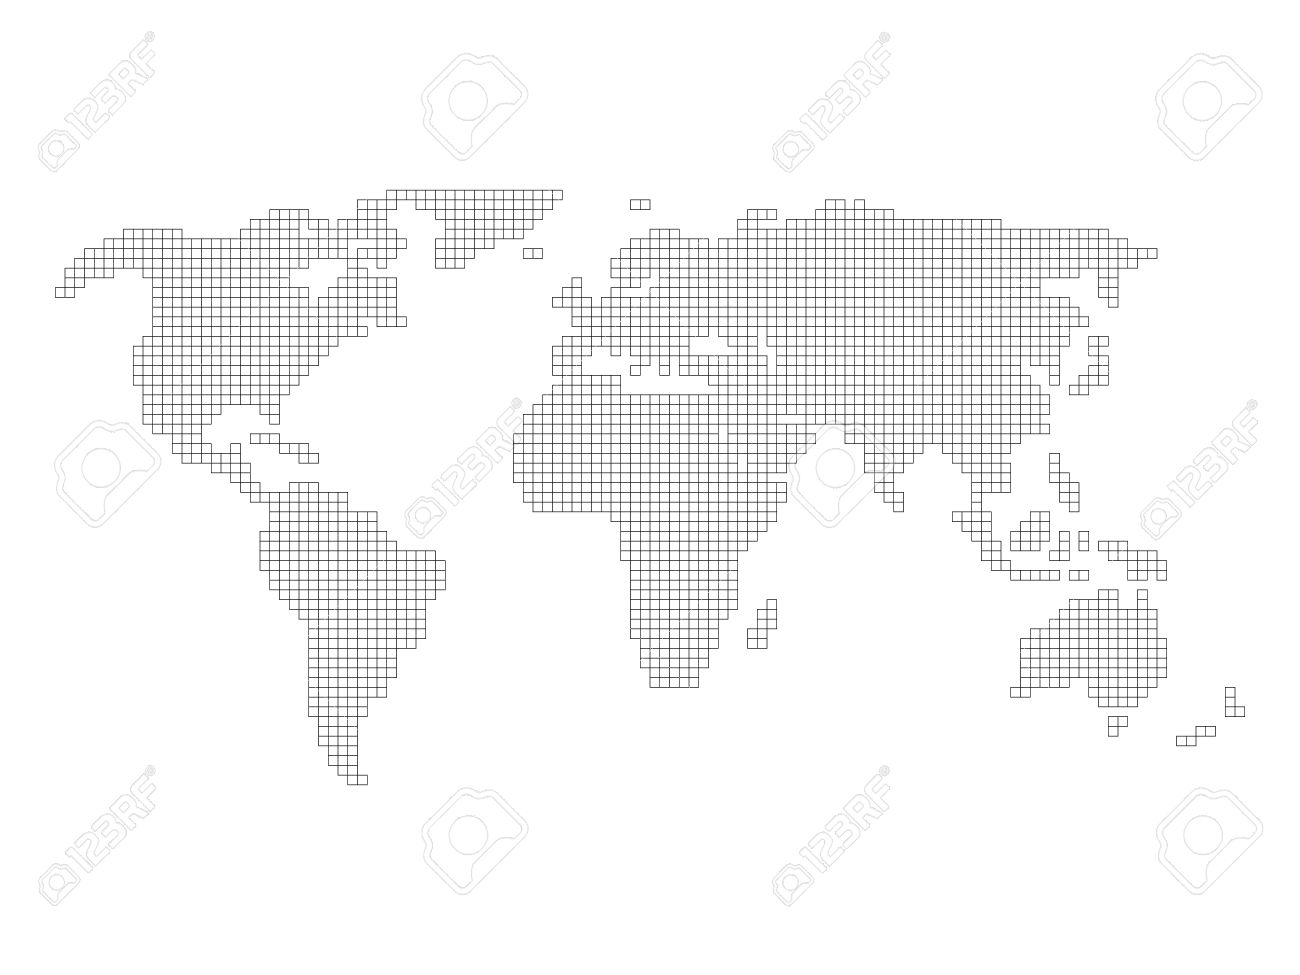 World map grid tiled by small squares with black outline and vector world map grid tiled by small squares with black outline and white fill on white background gumiabroncs Images